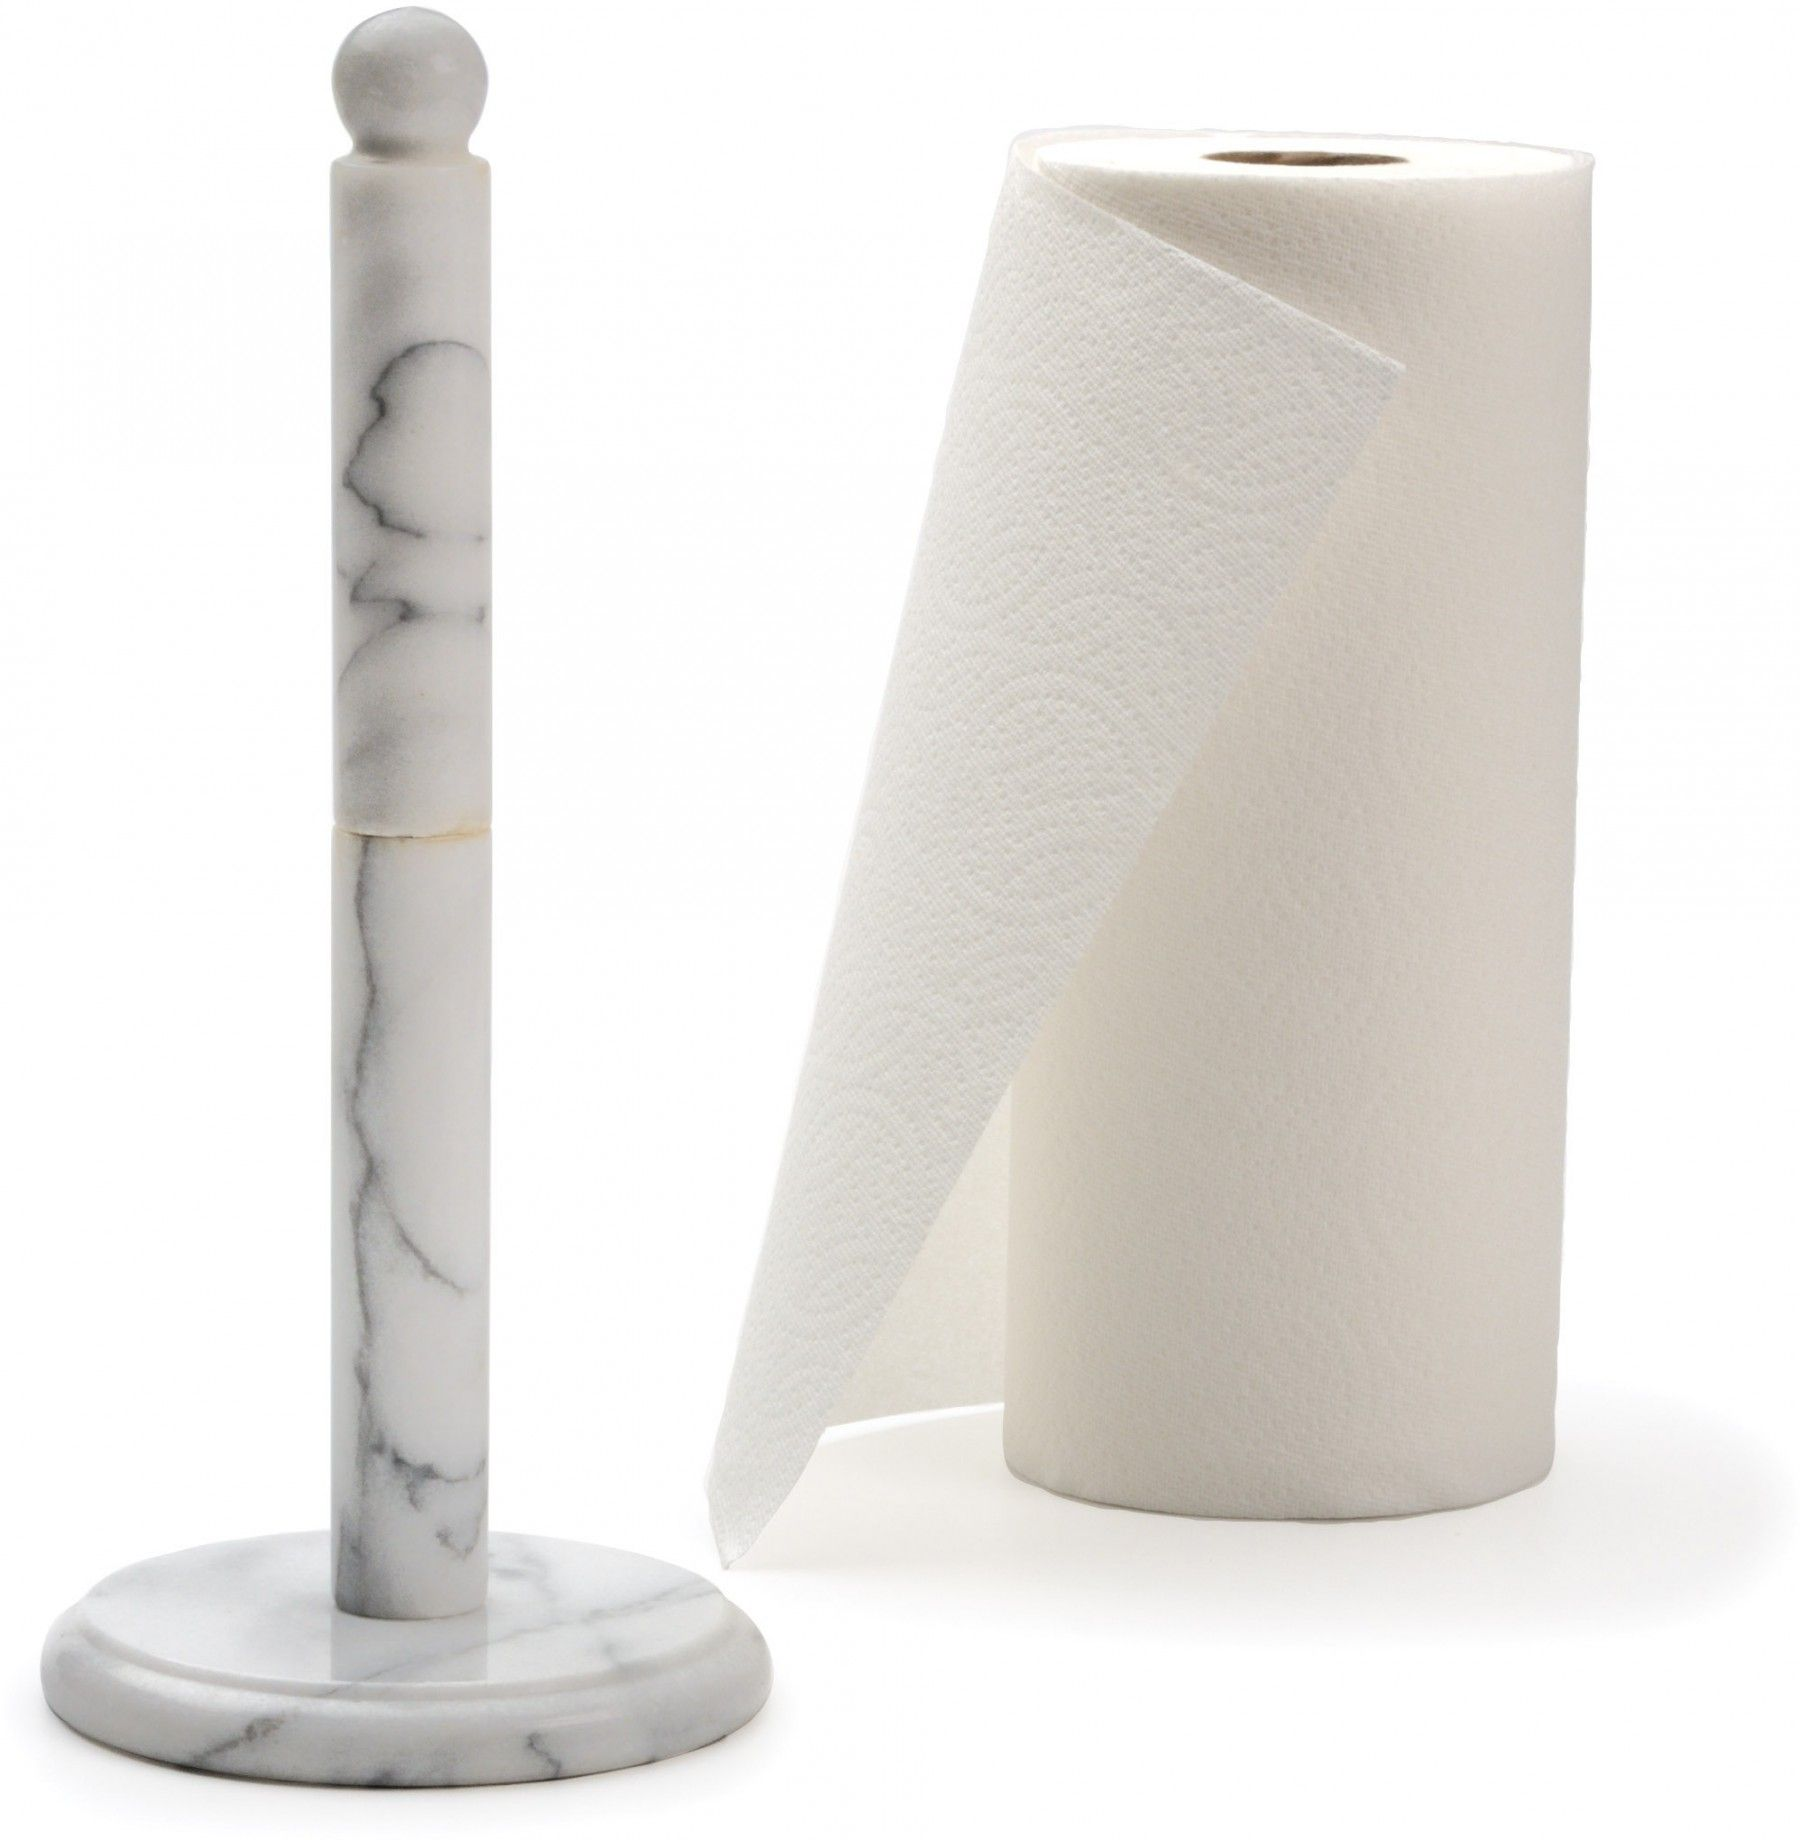 Rsvp White Marble Paper Towel Holder Paper Towel Holder Kitchen Towel Holder Paper Towel Holder